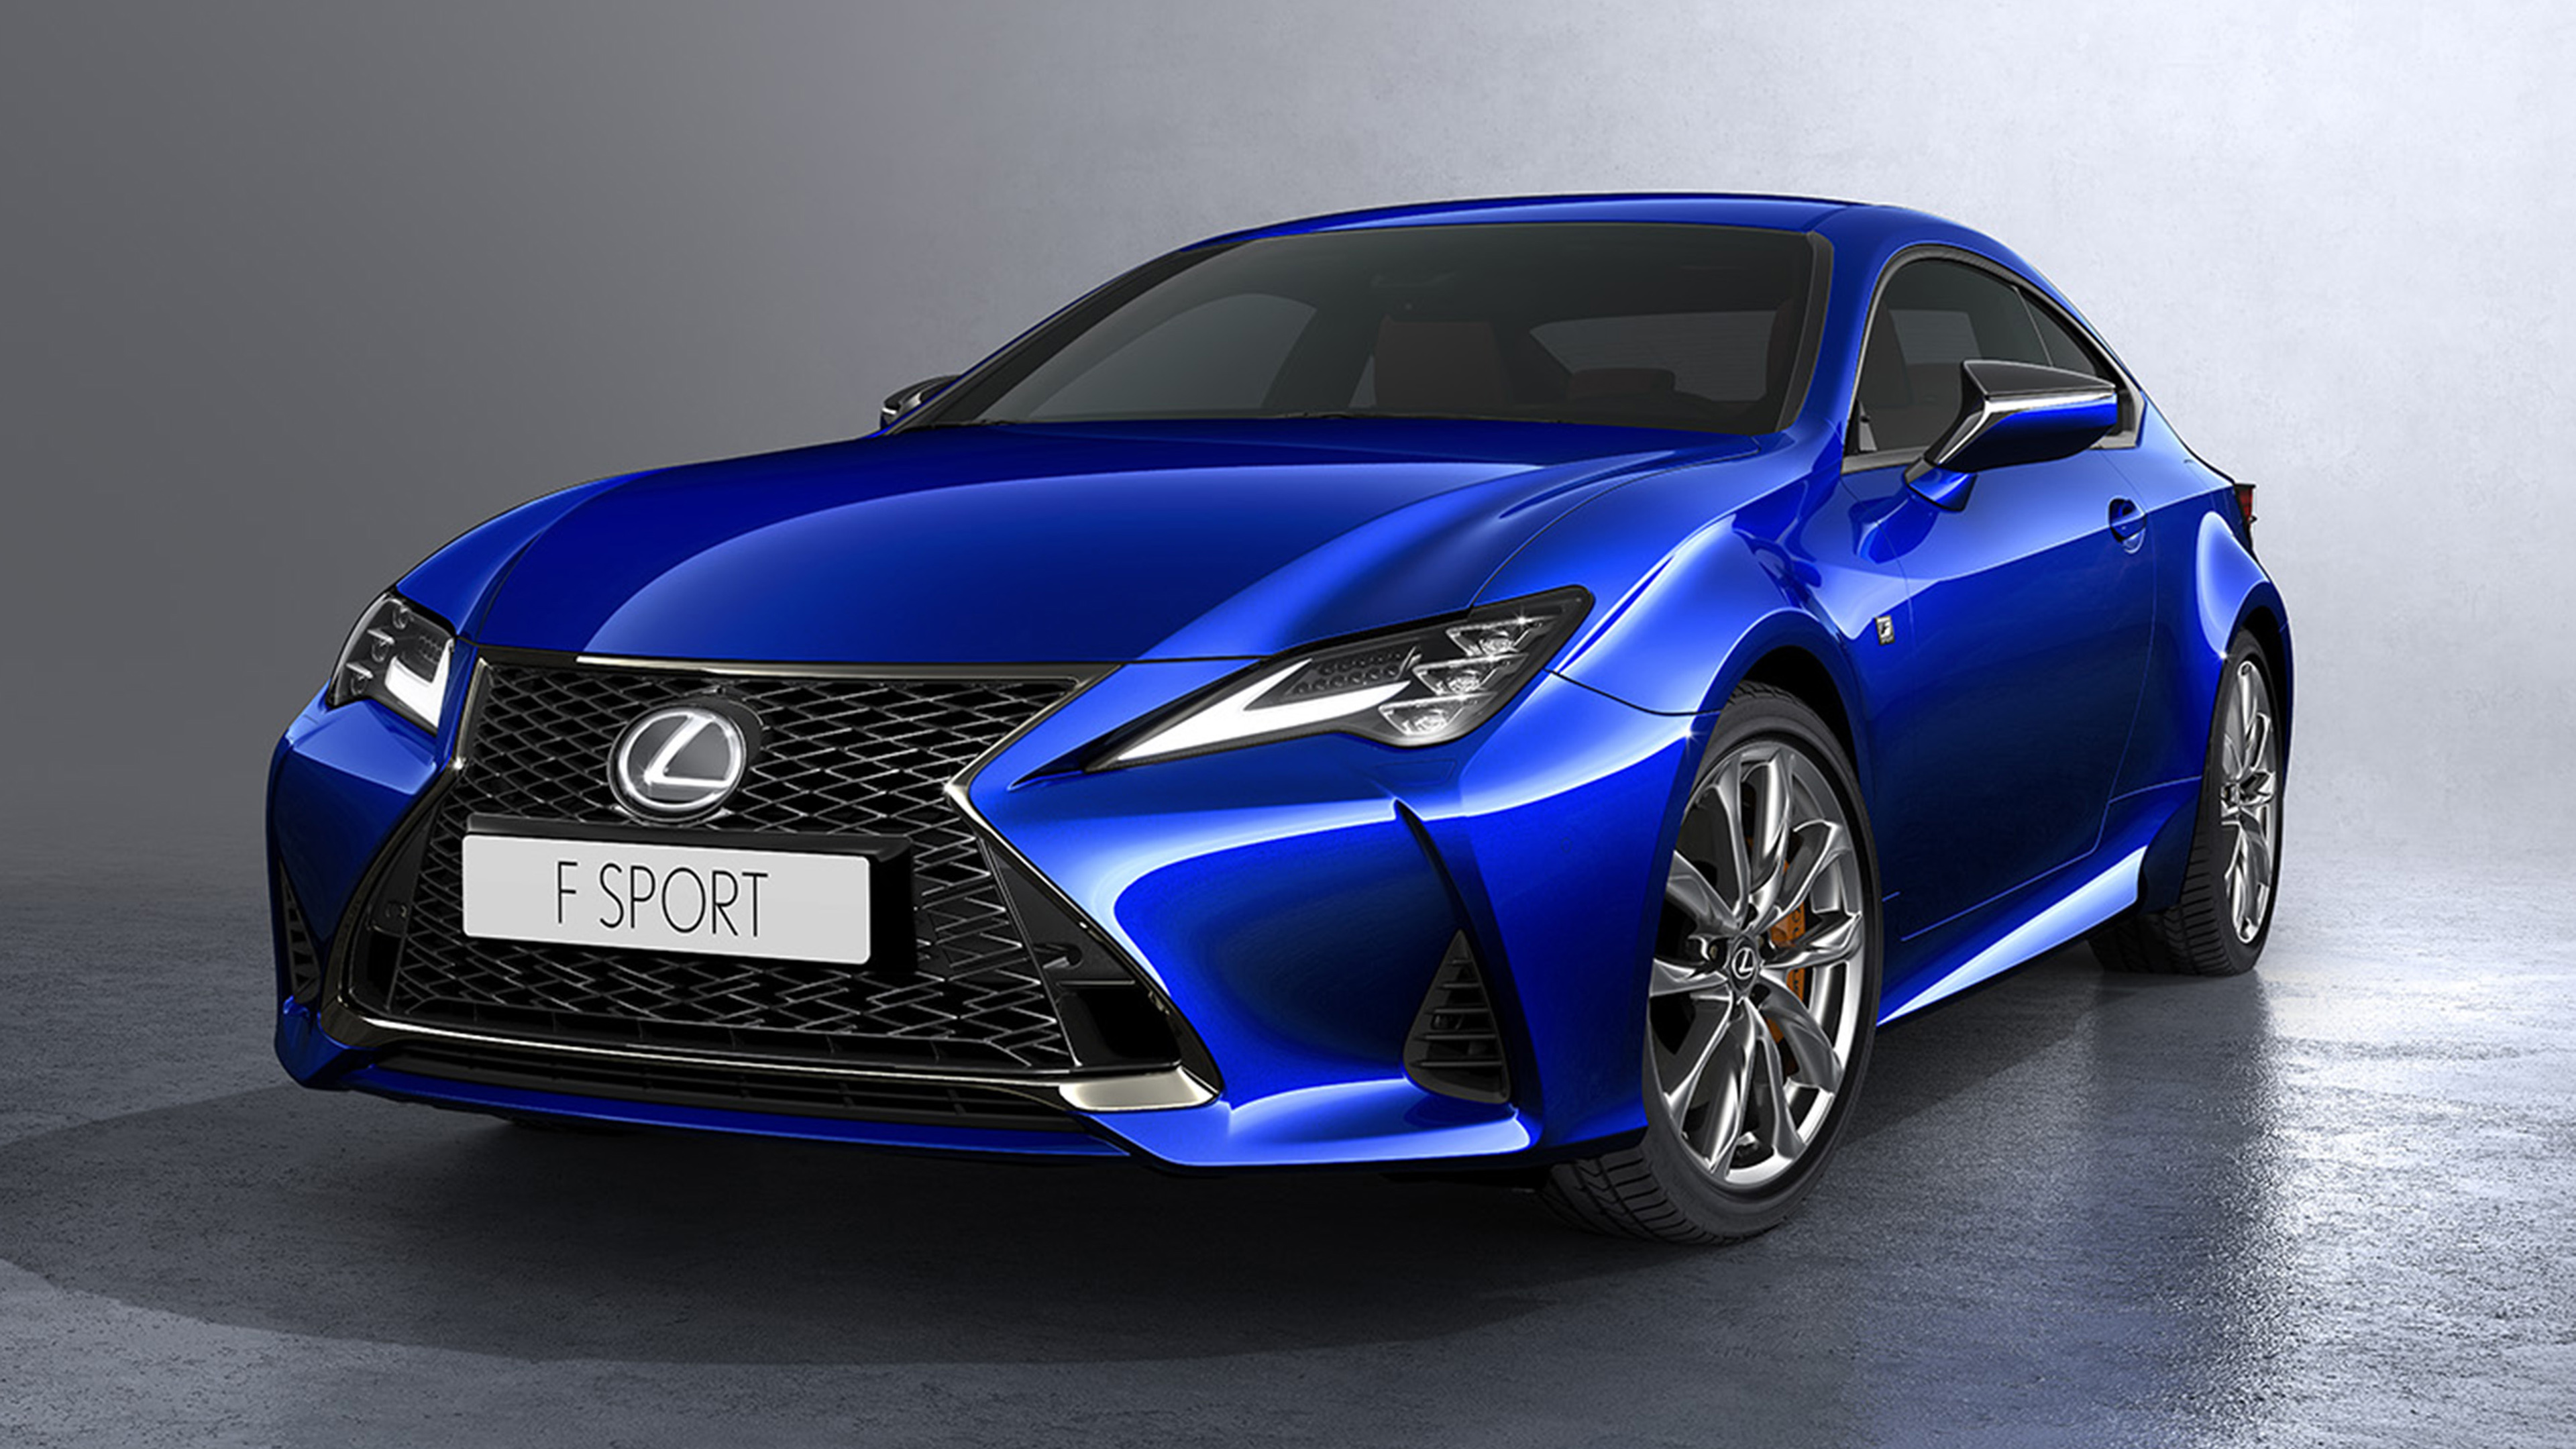 2018 Lexus Rc Coupe >> 2019 Lexus RC 350 F SPORT 4K Wallpaper | HD Car Wallpapers | ID #11177